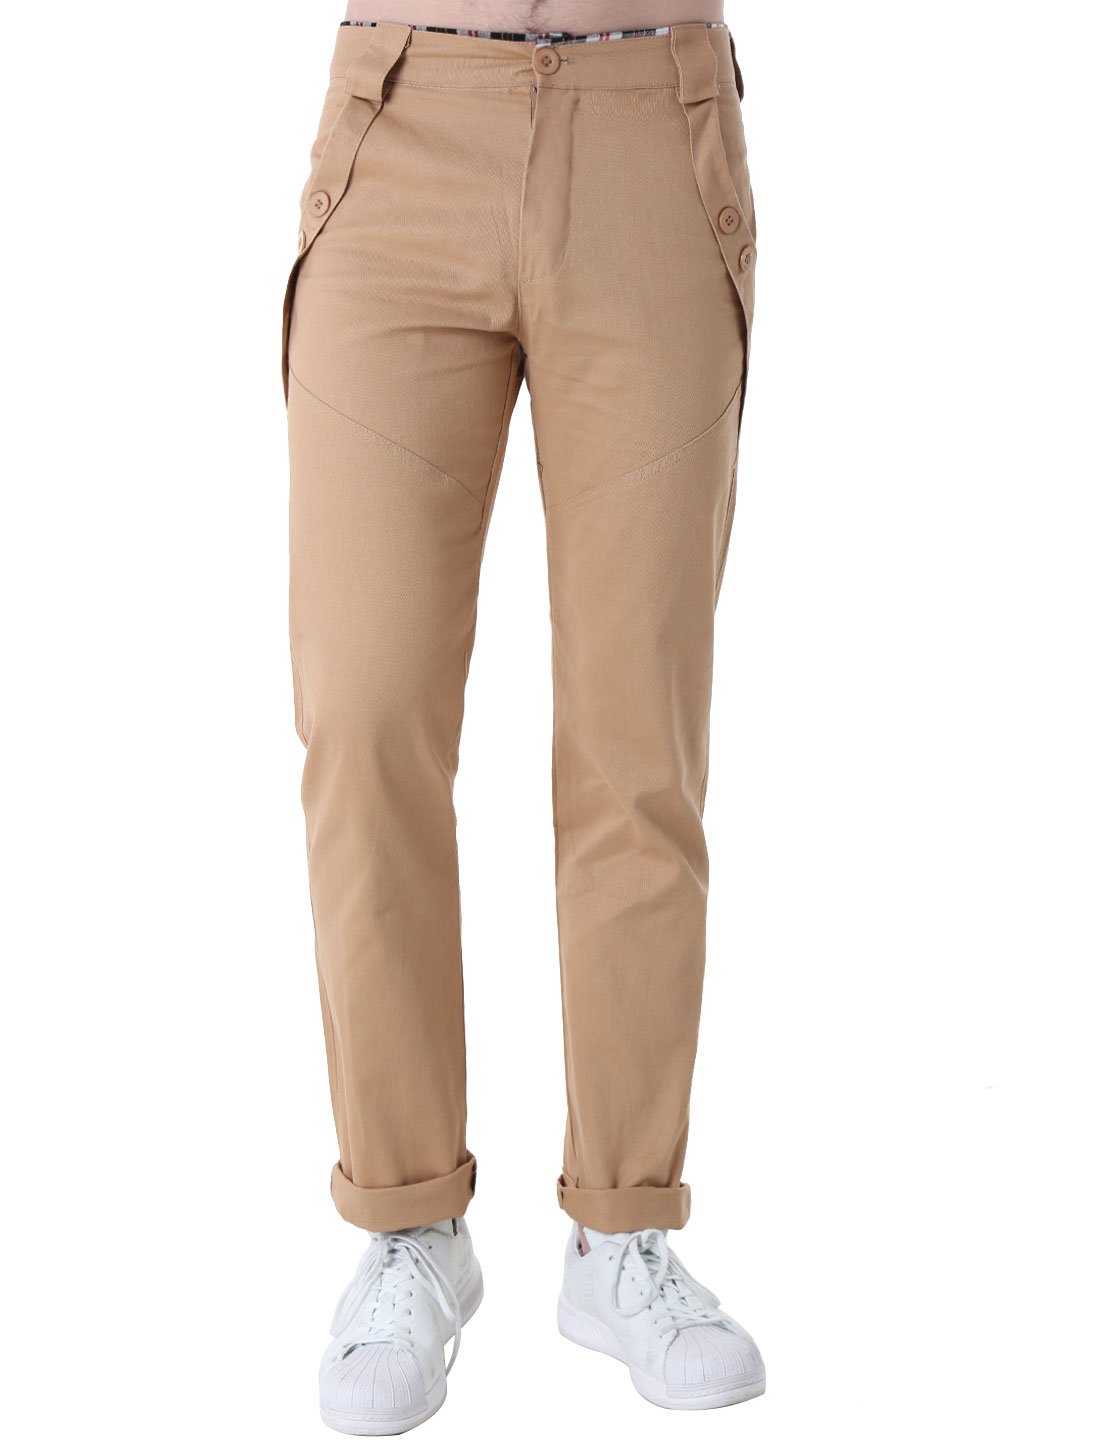 Mens Medium Khaki NEW Stylish Zip Fly Straight Slim Fit Trousers W30